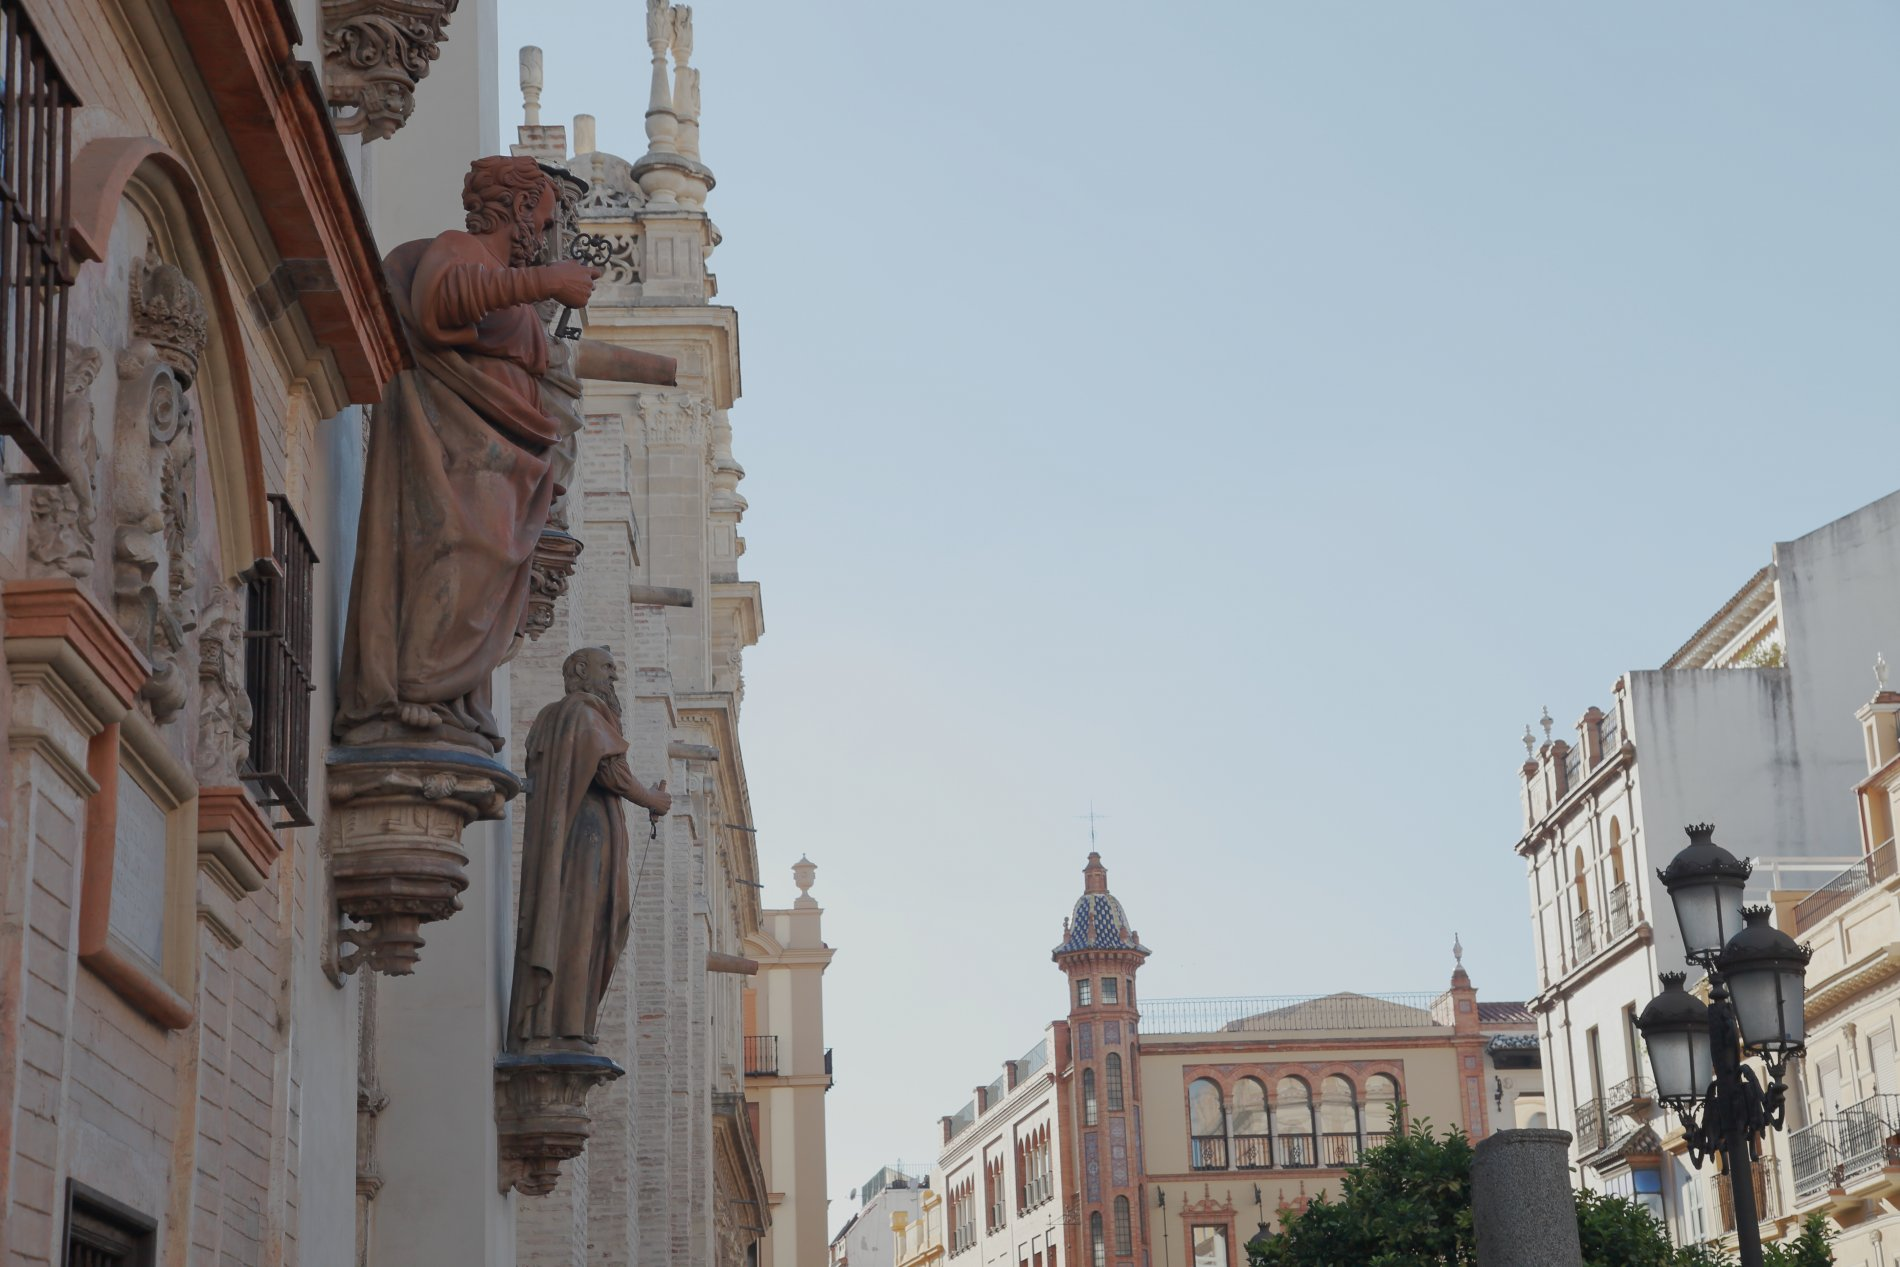 Seville-80.JPG-commment